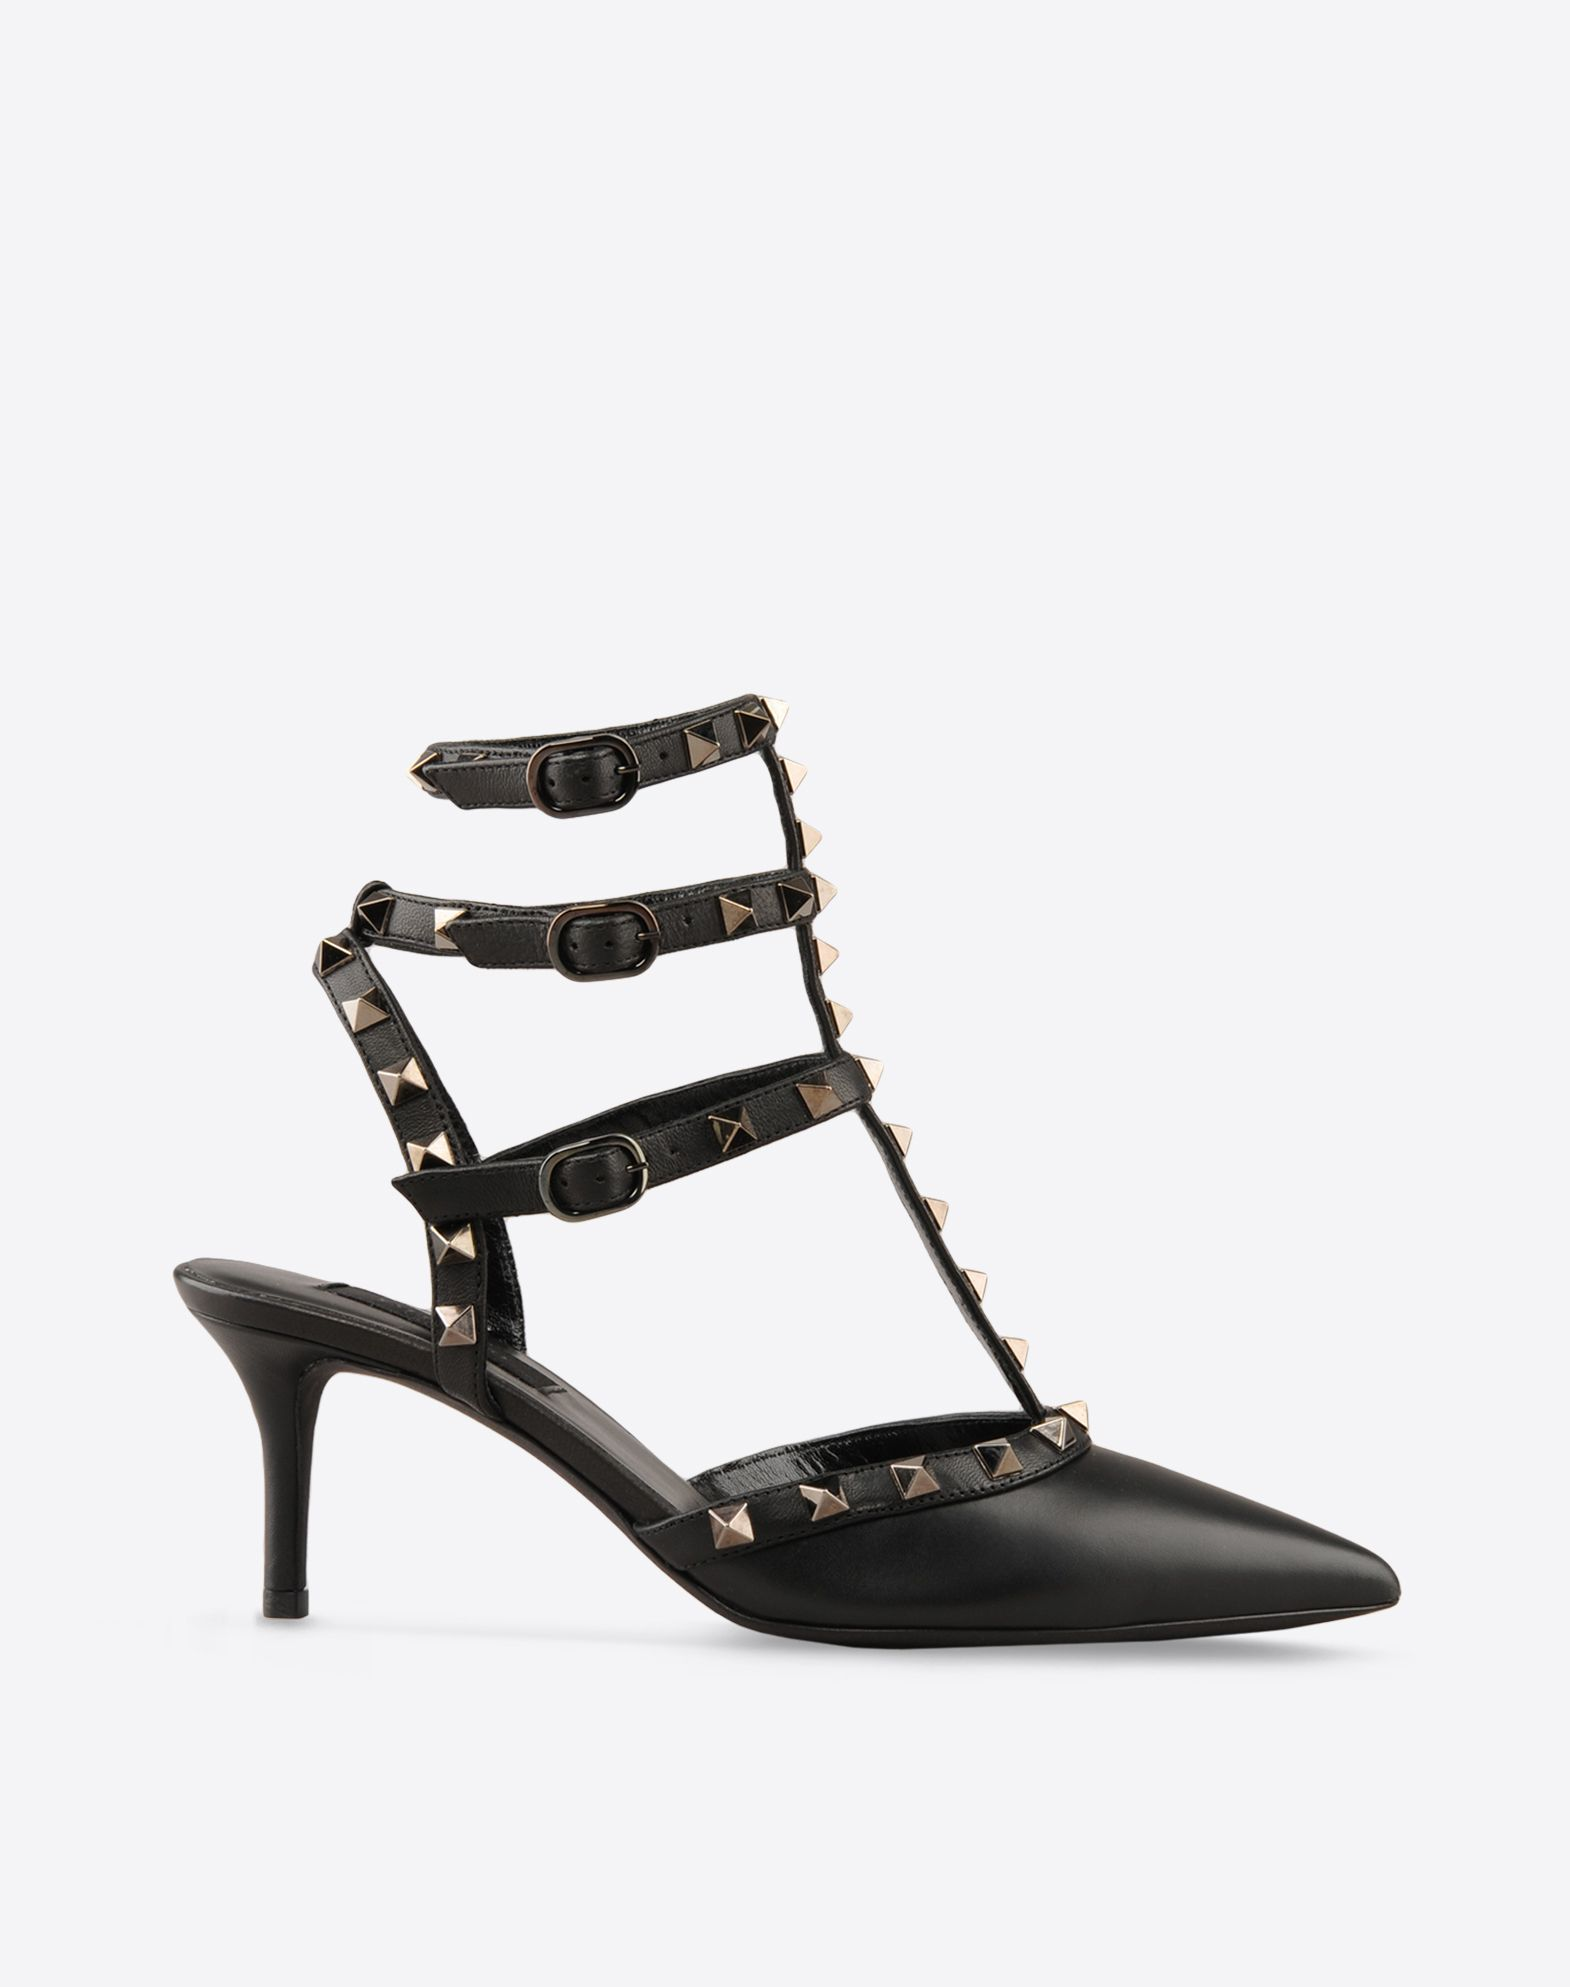 VALENTINO Solid color Leather sole Side buckle closure Metallic inserts Narrow toeline Spike heel  44583506gh